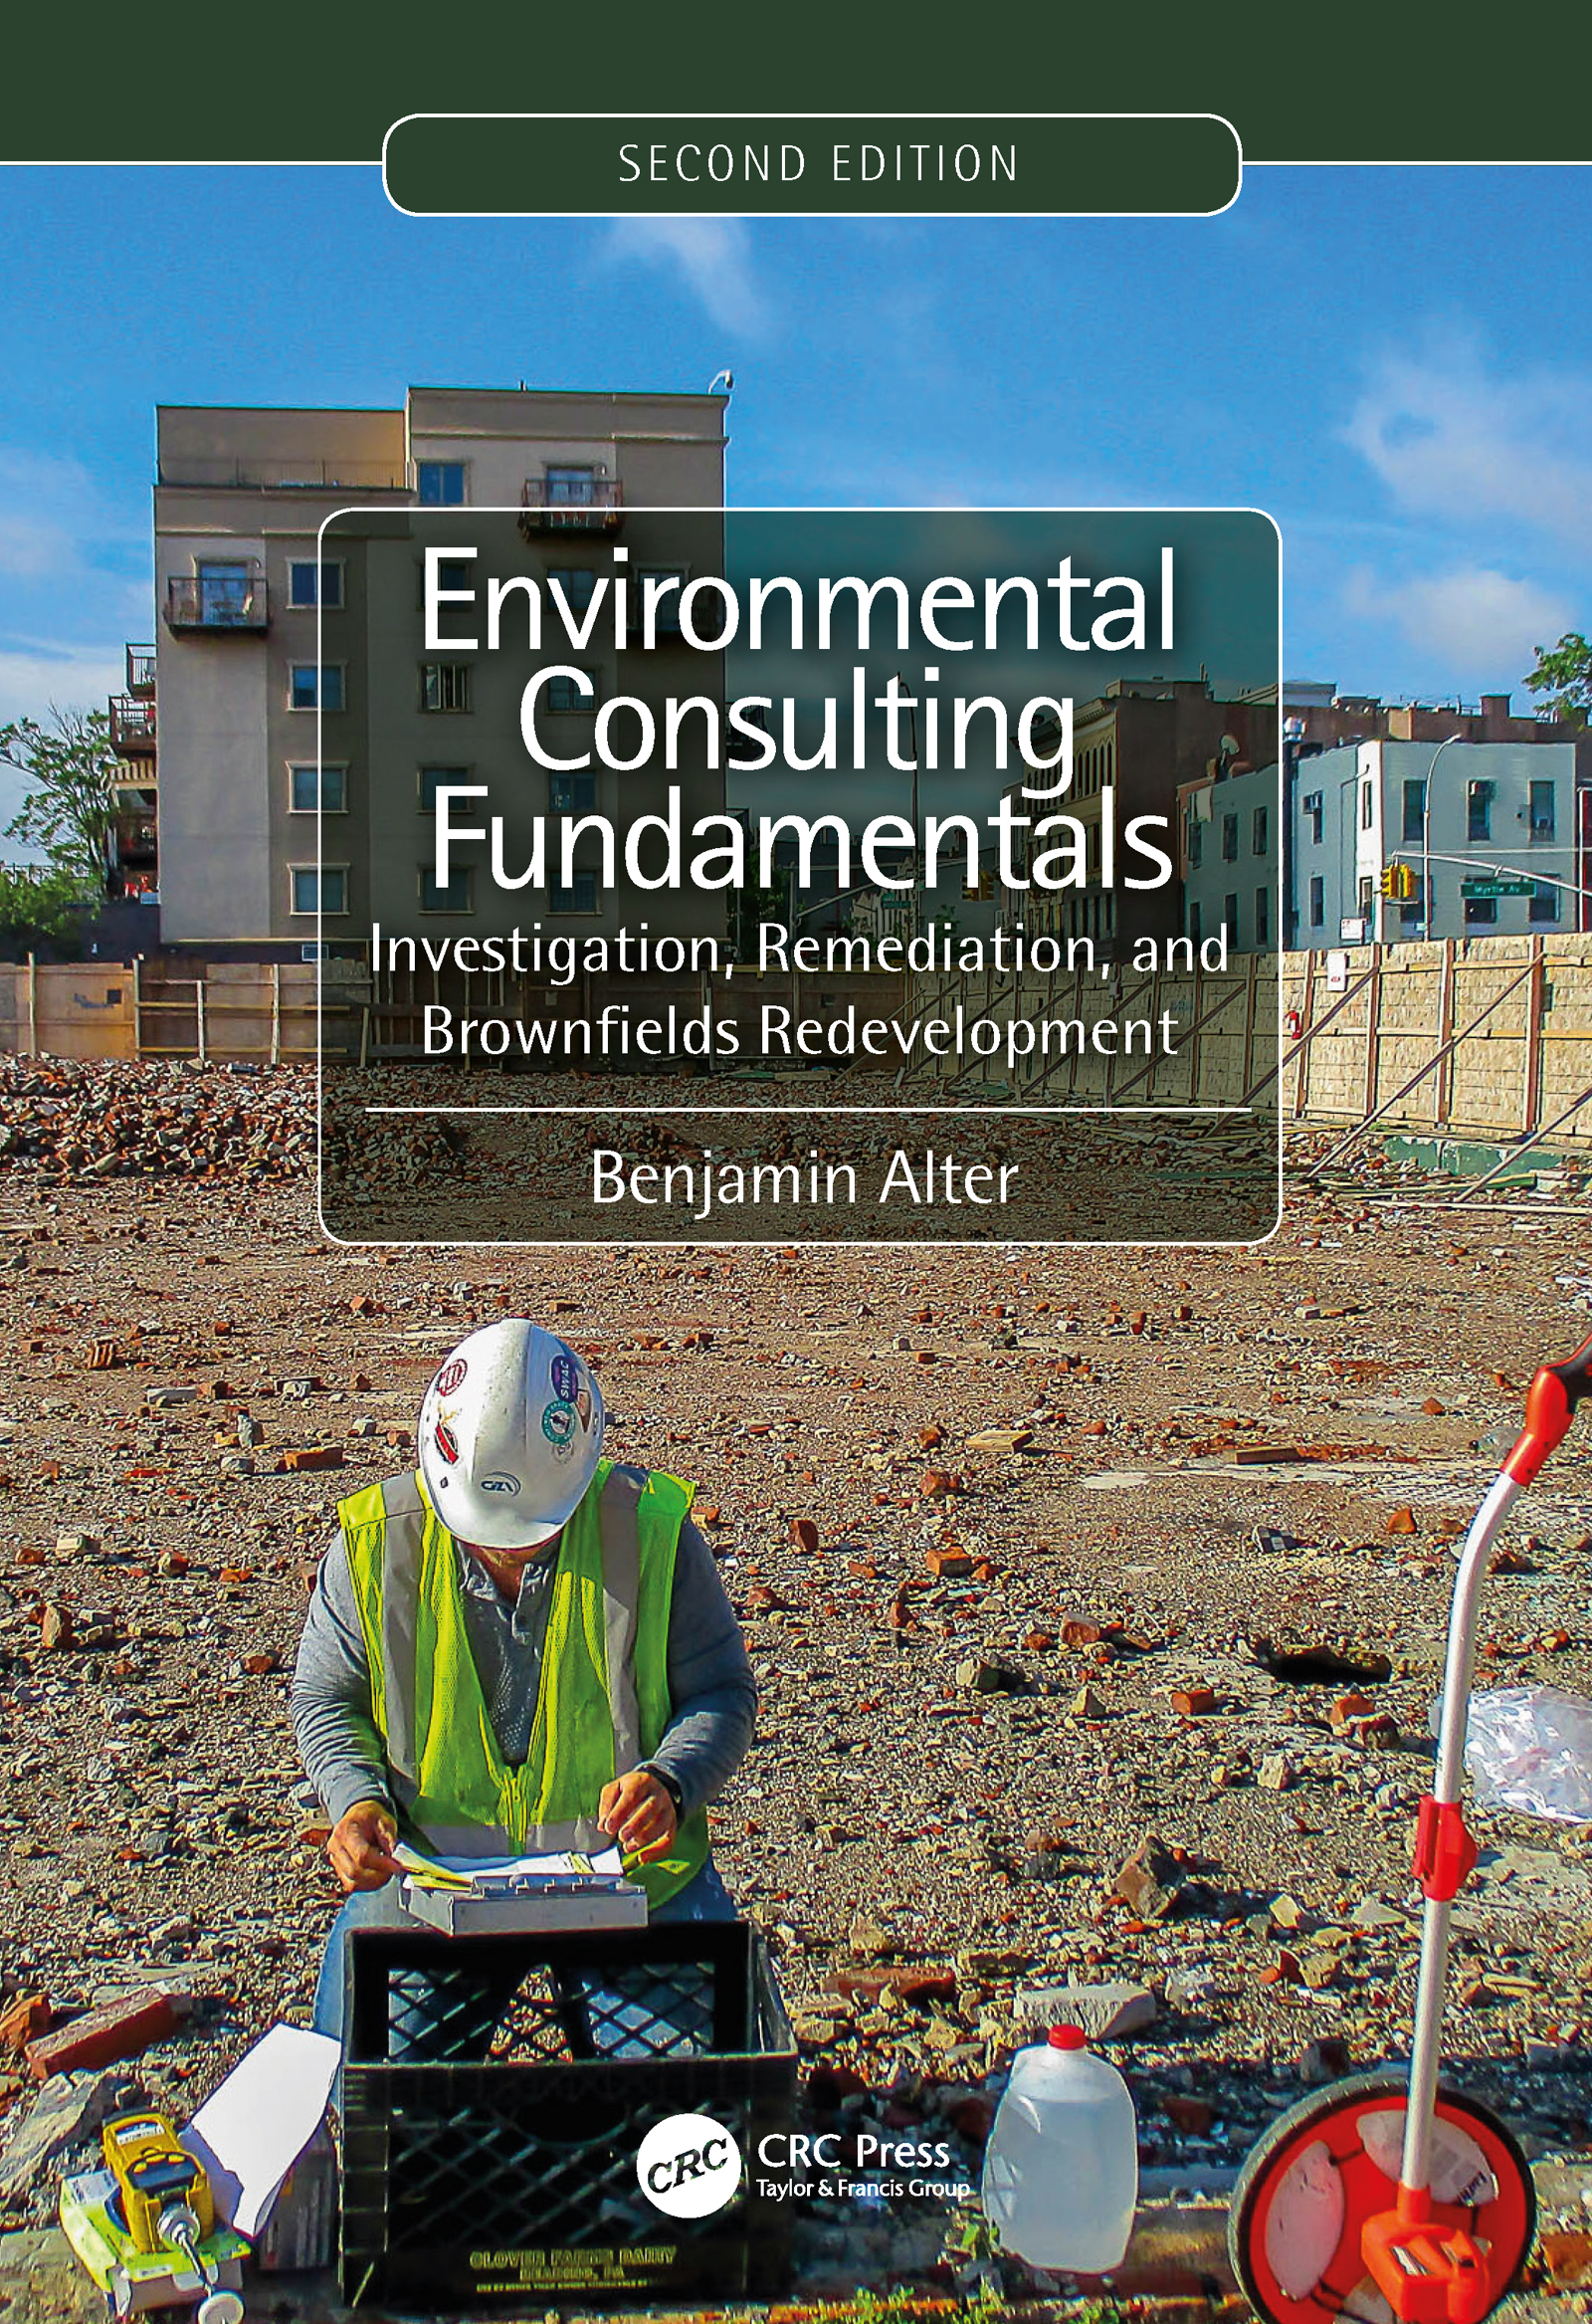 Environmental Consulting Fundamentals: Investigation, Remediation, and Brownfields Redevelopment, Second Edition book cover